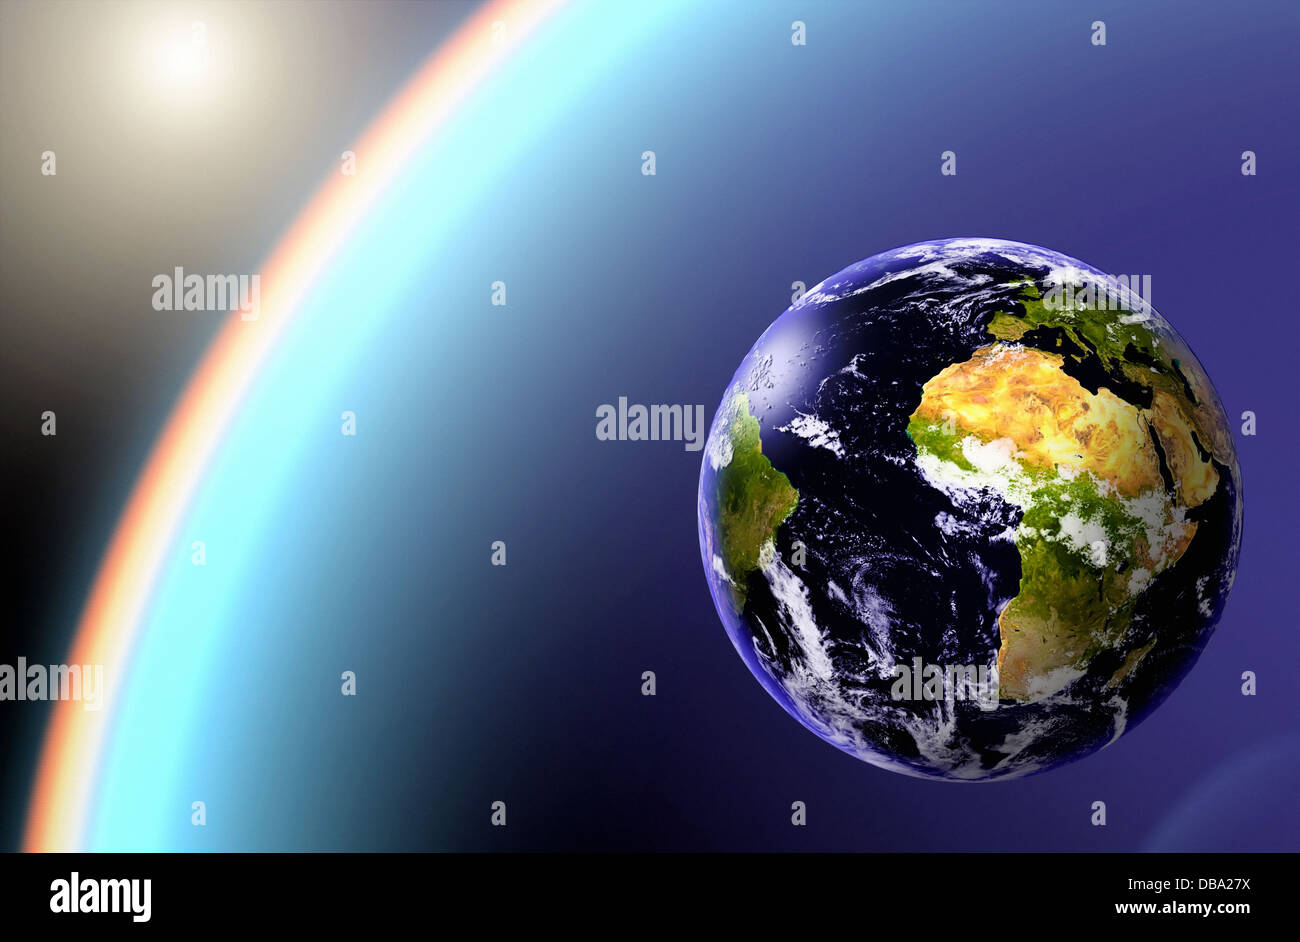 Earthlight >> Earth Globe With Earthlight In Black Cosmos Stock Photo 58613630